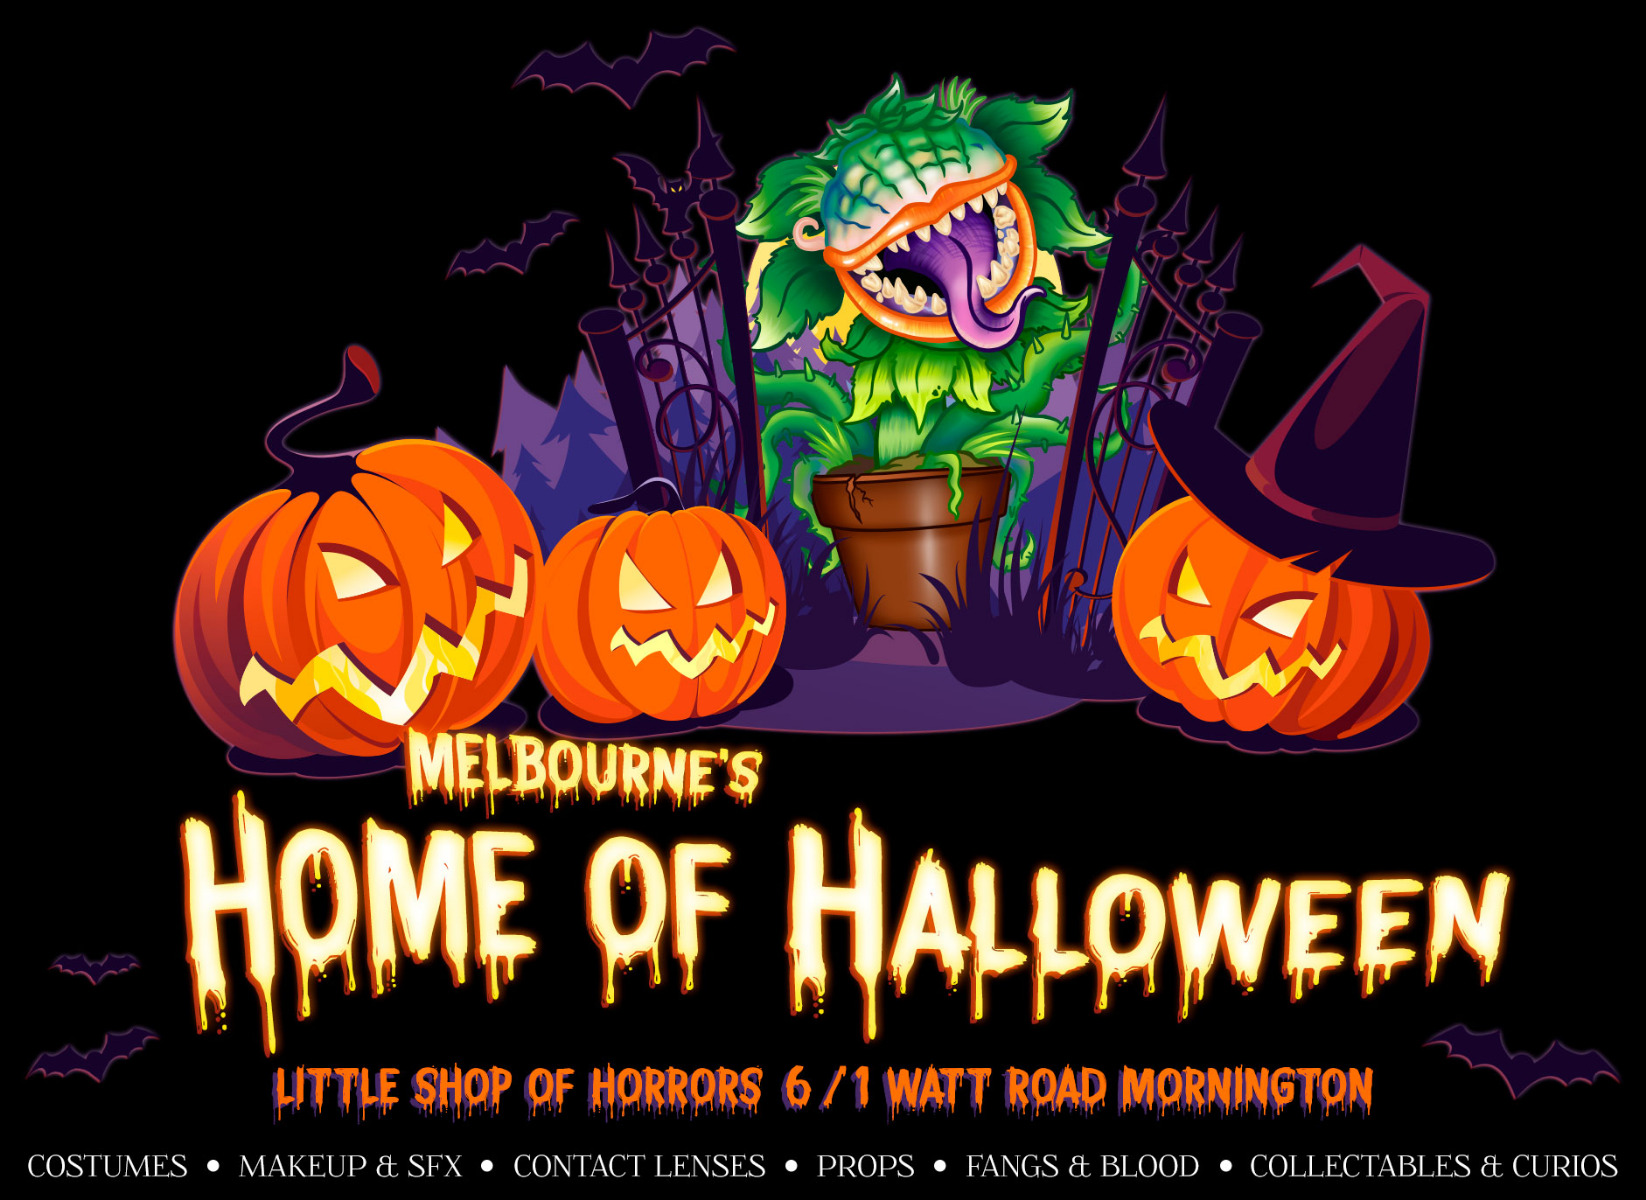 Melbourne's Home of Halloween!